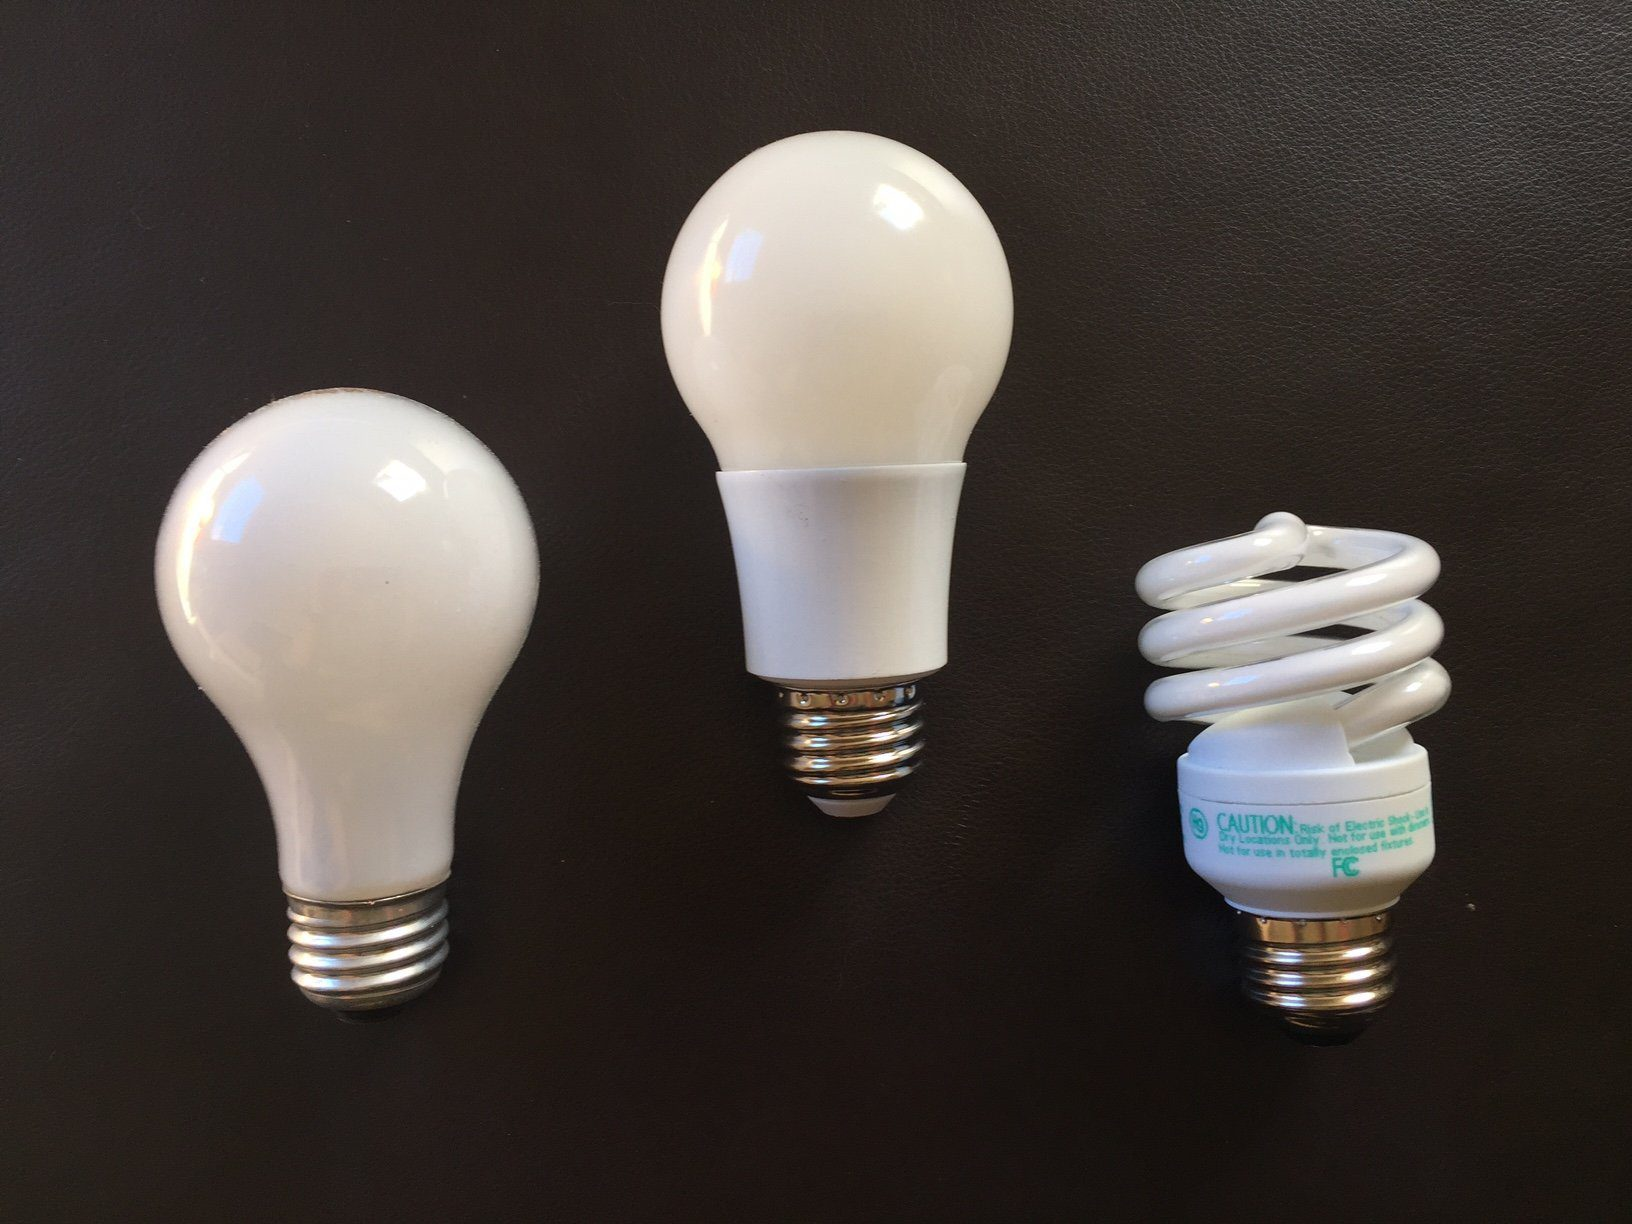 Lightbulb Lights A Primer On The New Law That Will Banish Incandescent Bulbs In